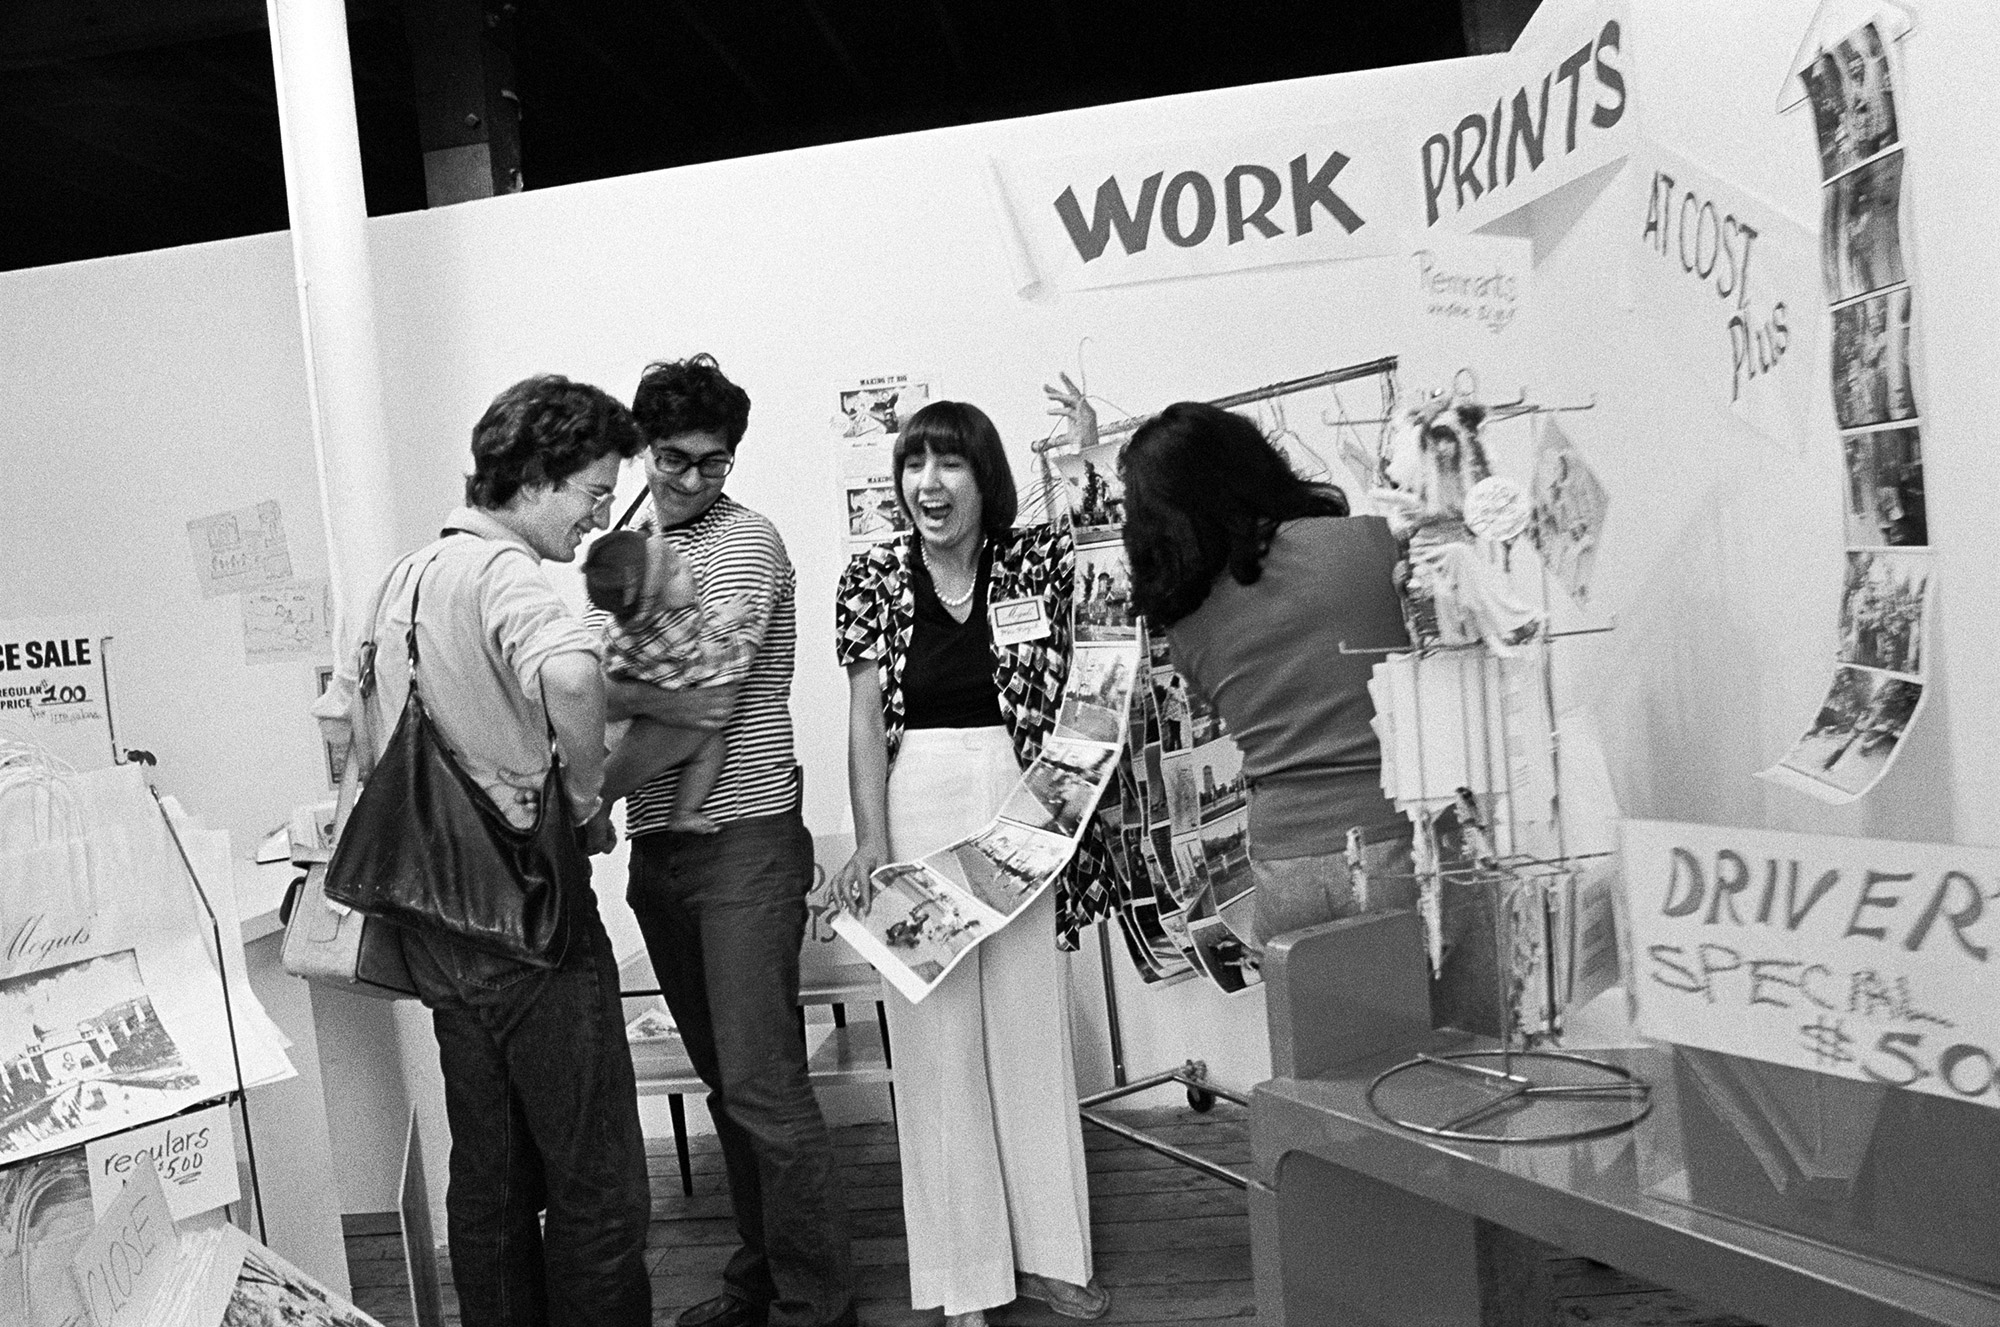 3.August_Clearance_Work_Prints_1976-copy